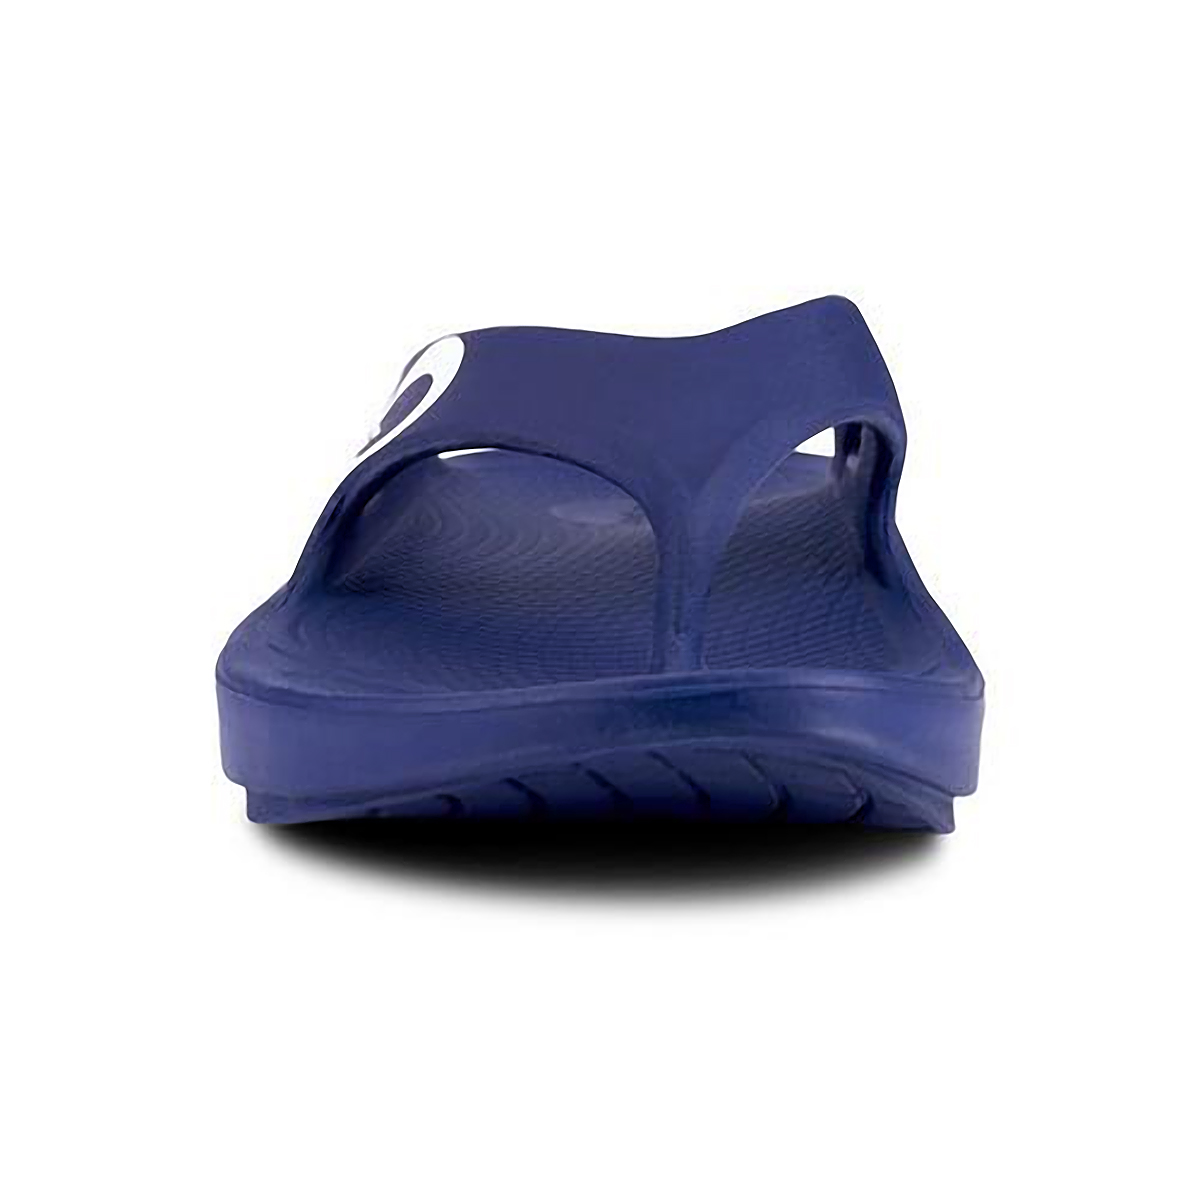 Oofos OOriginal Sport Recovery Sandal - Color: Navy - Size: M7/W9 - Width: Regular, Navy, large, image 3